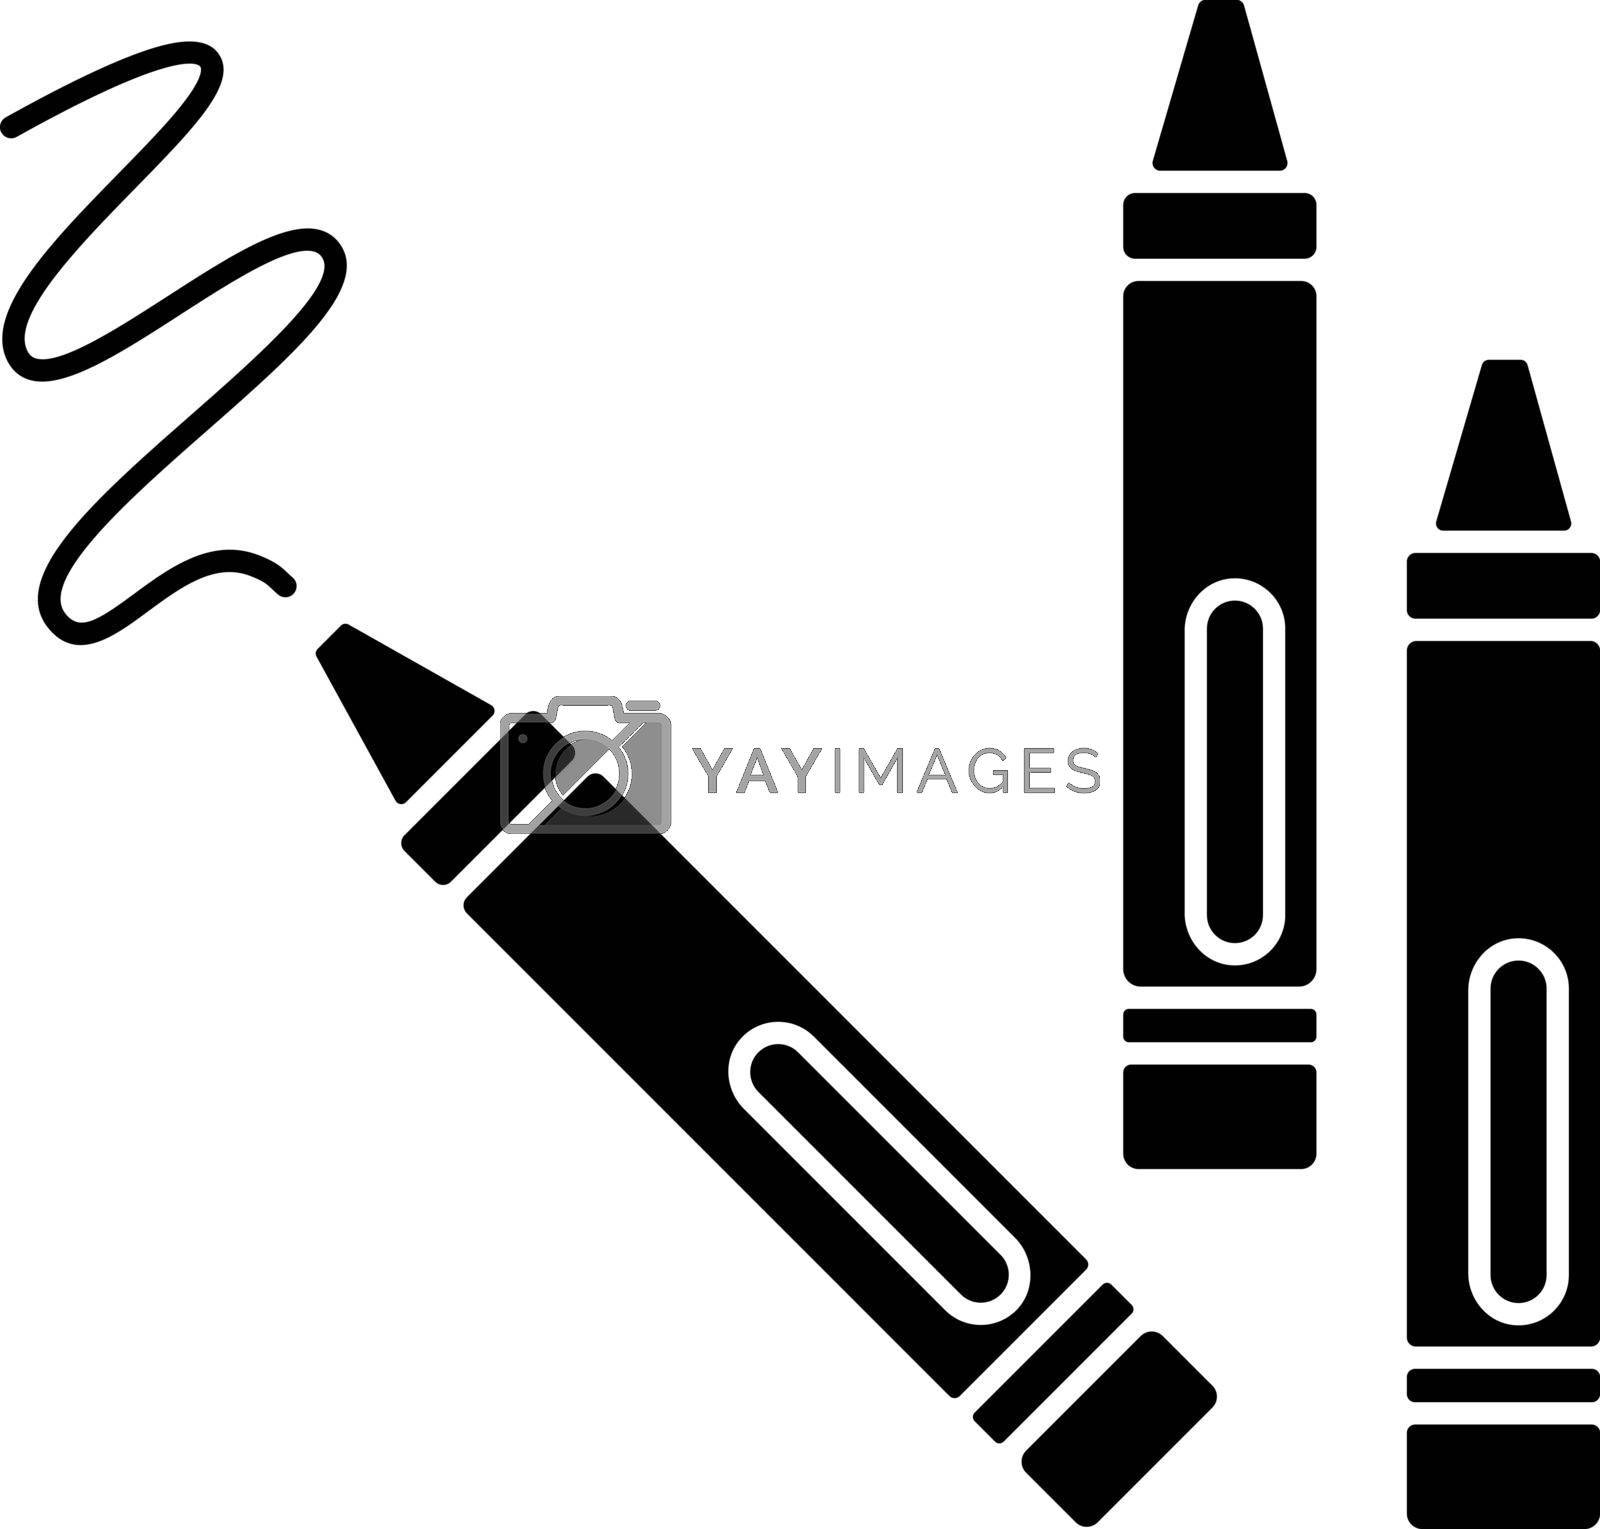 Crayons black glyph icon. Wax pencils for drawing. Children creativity and fine motor skills development toys. Color recognition. Silhouette symbol on white space. Vector isolated illustration